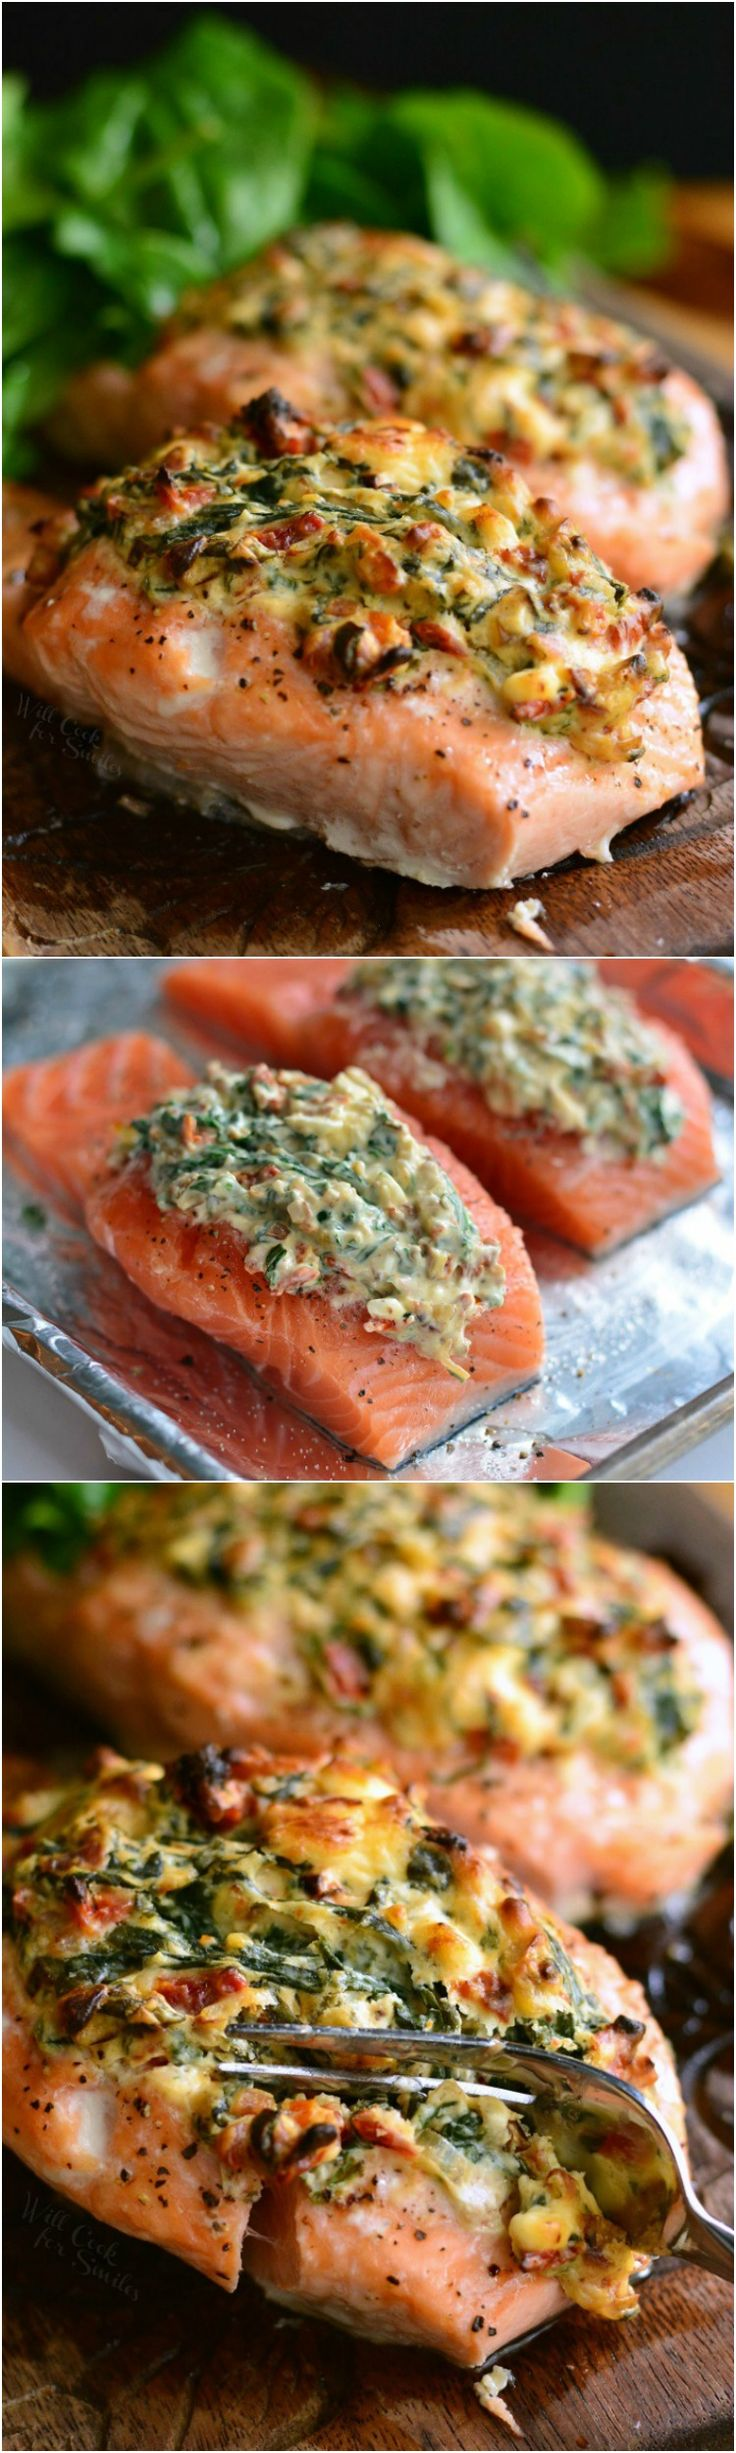 Creamy Spinach and Sun Dried Tomato Stuffed Salmon.  Baked, juicy salmon that is stuffed with an easy sun-dried tomato, spinach, and cream cheese mixture. #salmon #stuffedsalmon #bakedsalmon